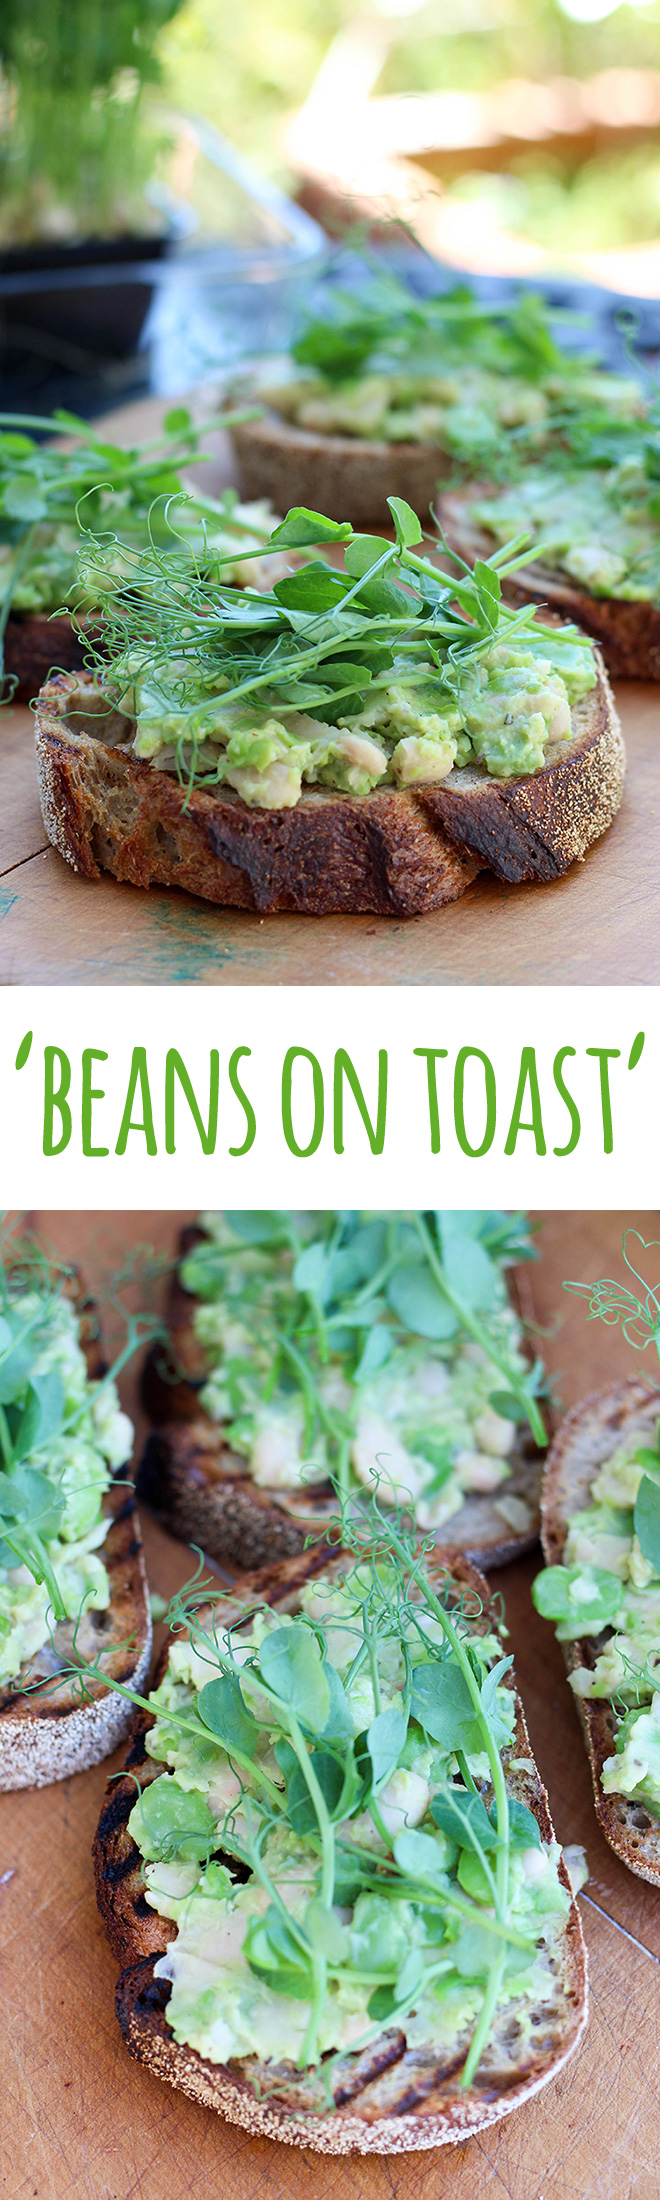 It's beans on toast, but not as you know it. This version is light, refreshing and packed with plant protein for a delicious and healthy meal.